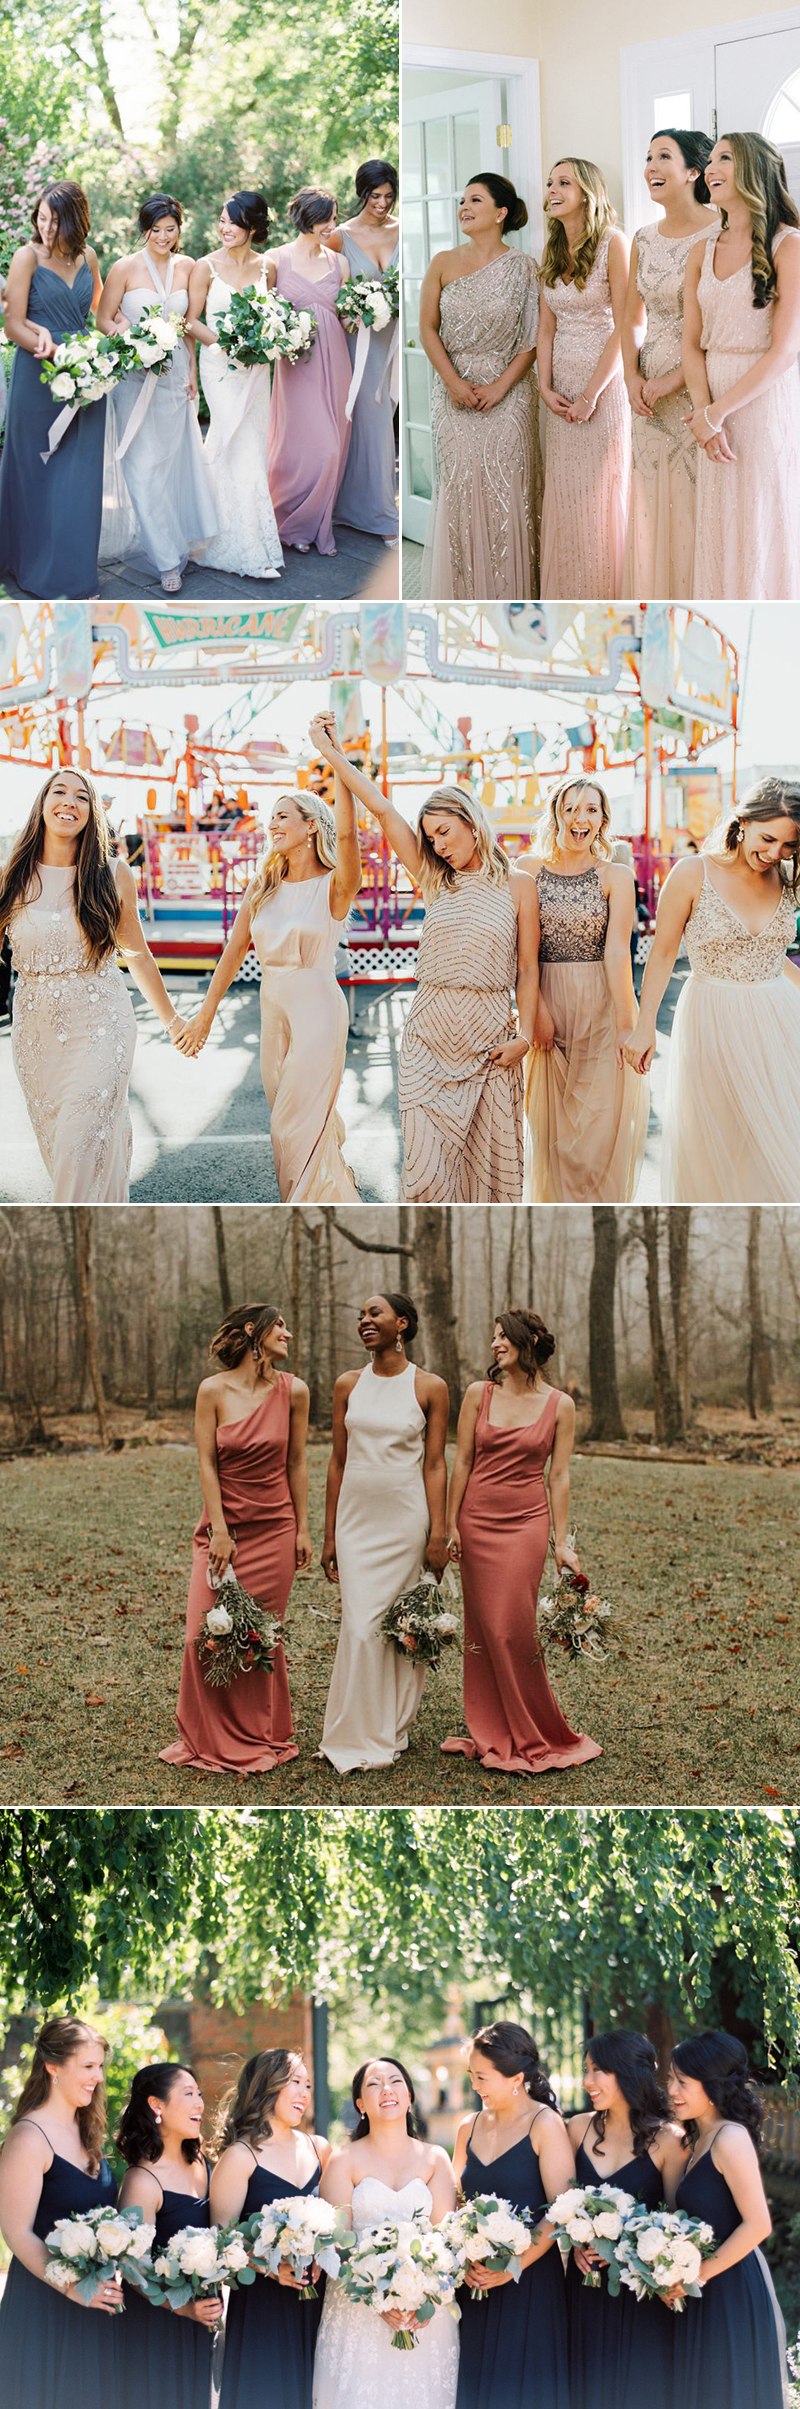 8da4fce4a42 Best Places To Shop For Bridesmaid Dresses You Can Actually Wear ...